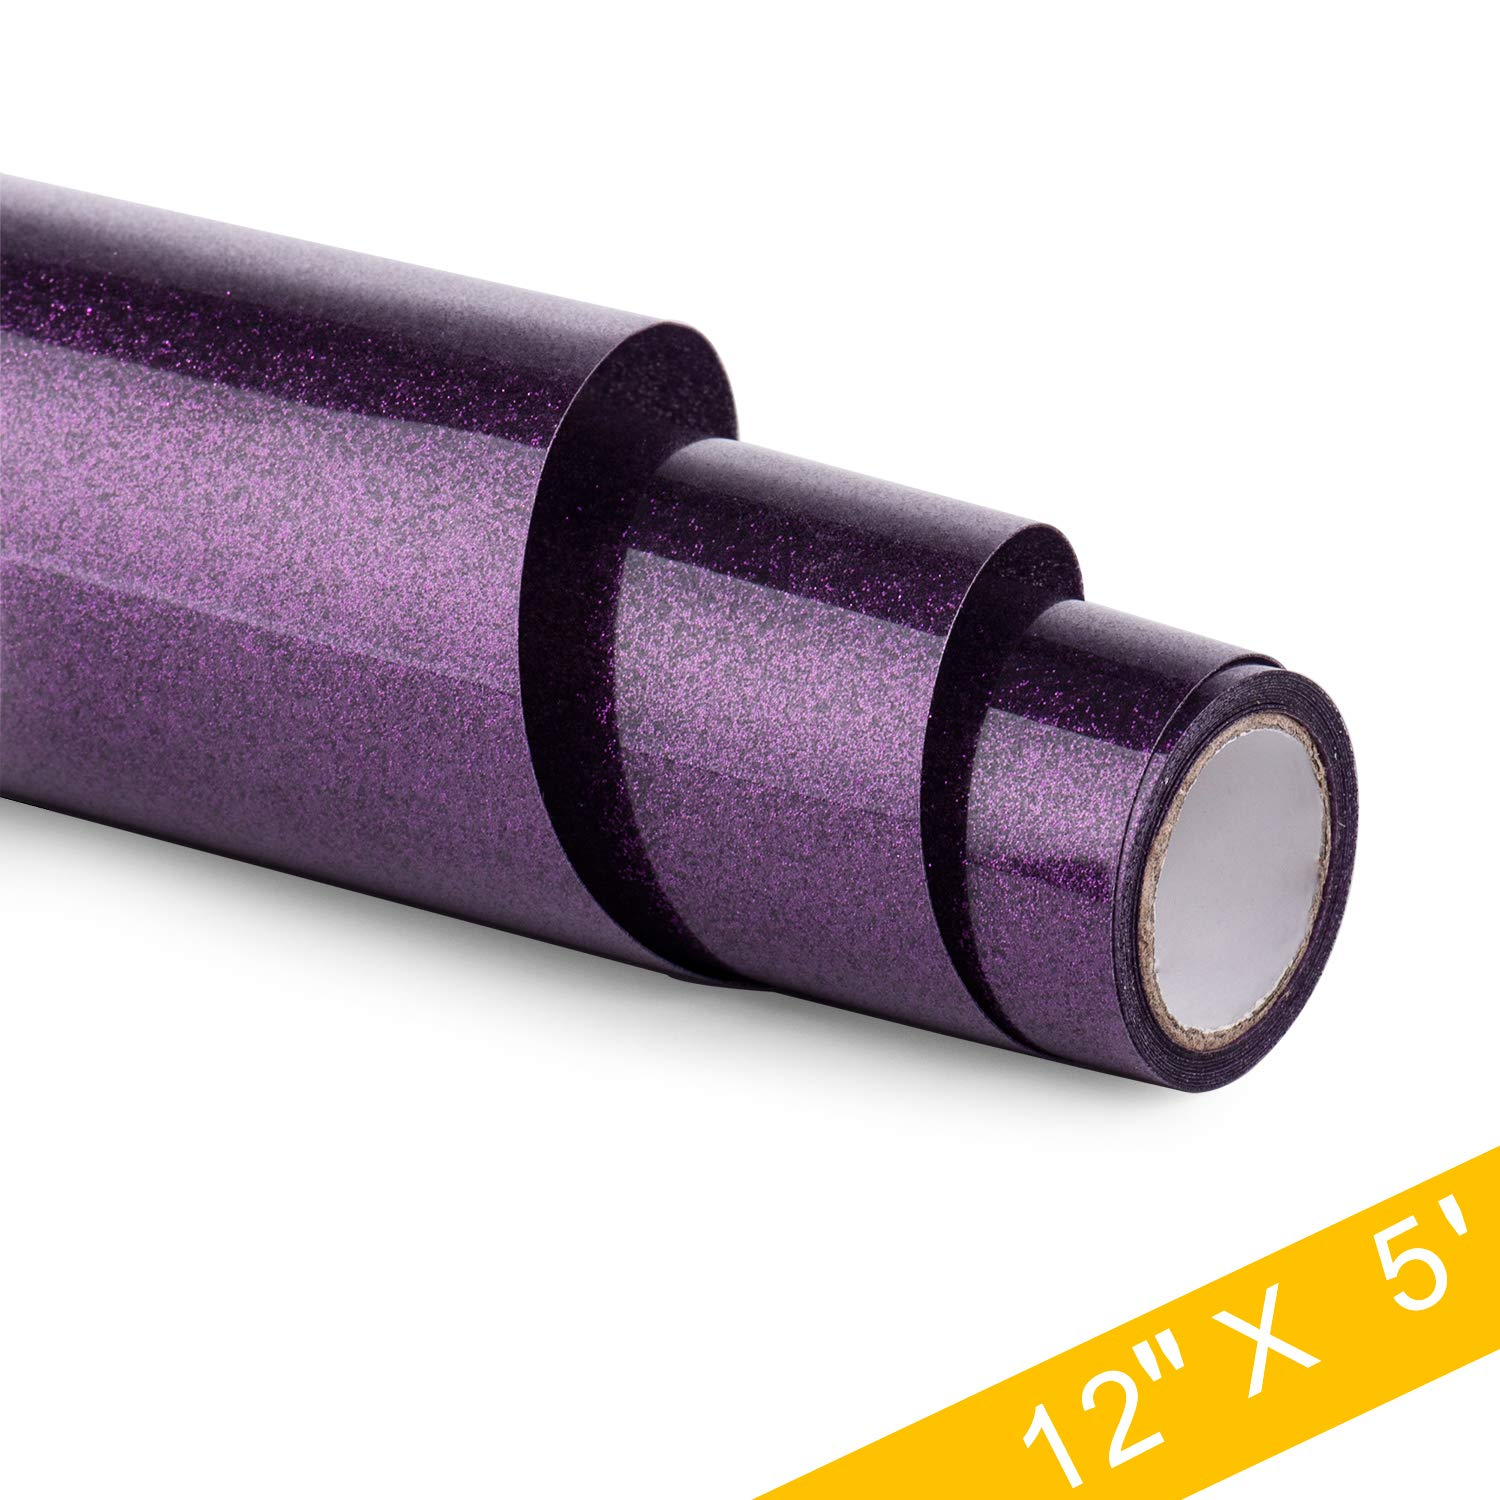 Iron On Vinyl for Cricut /& Silhouette Cameo Easy to Cut /& Weed Vibrant Color Design for T-Shirt and Other Textiles Durable Purple Glitter HTV vinyl 12 x 5ft PU Heat Transfer Vinyl roll